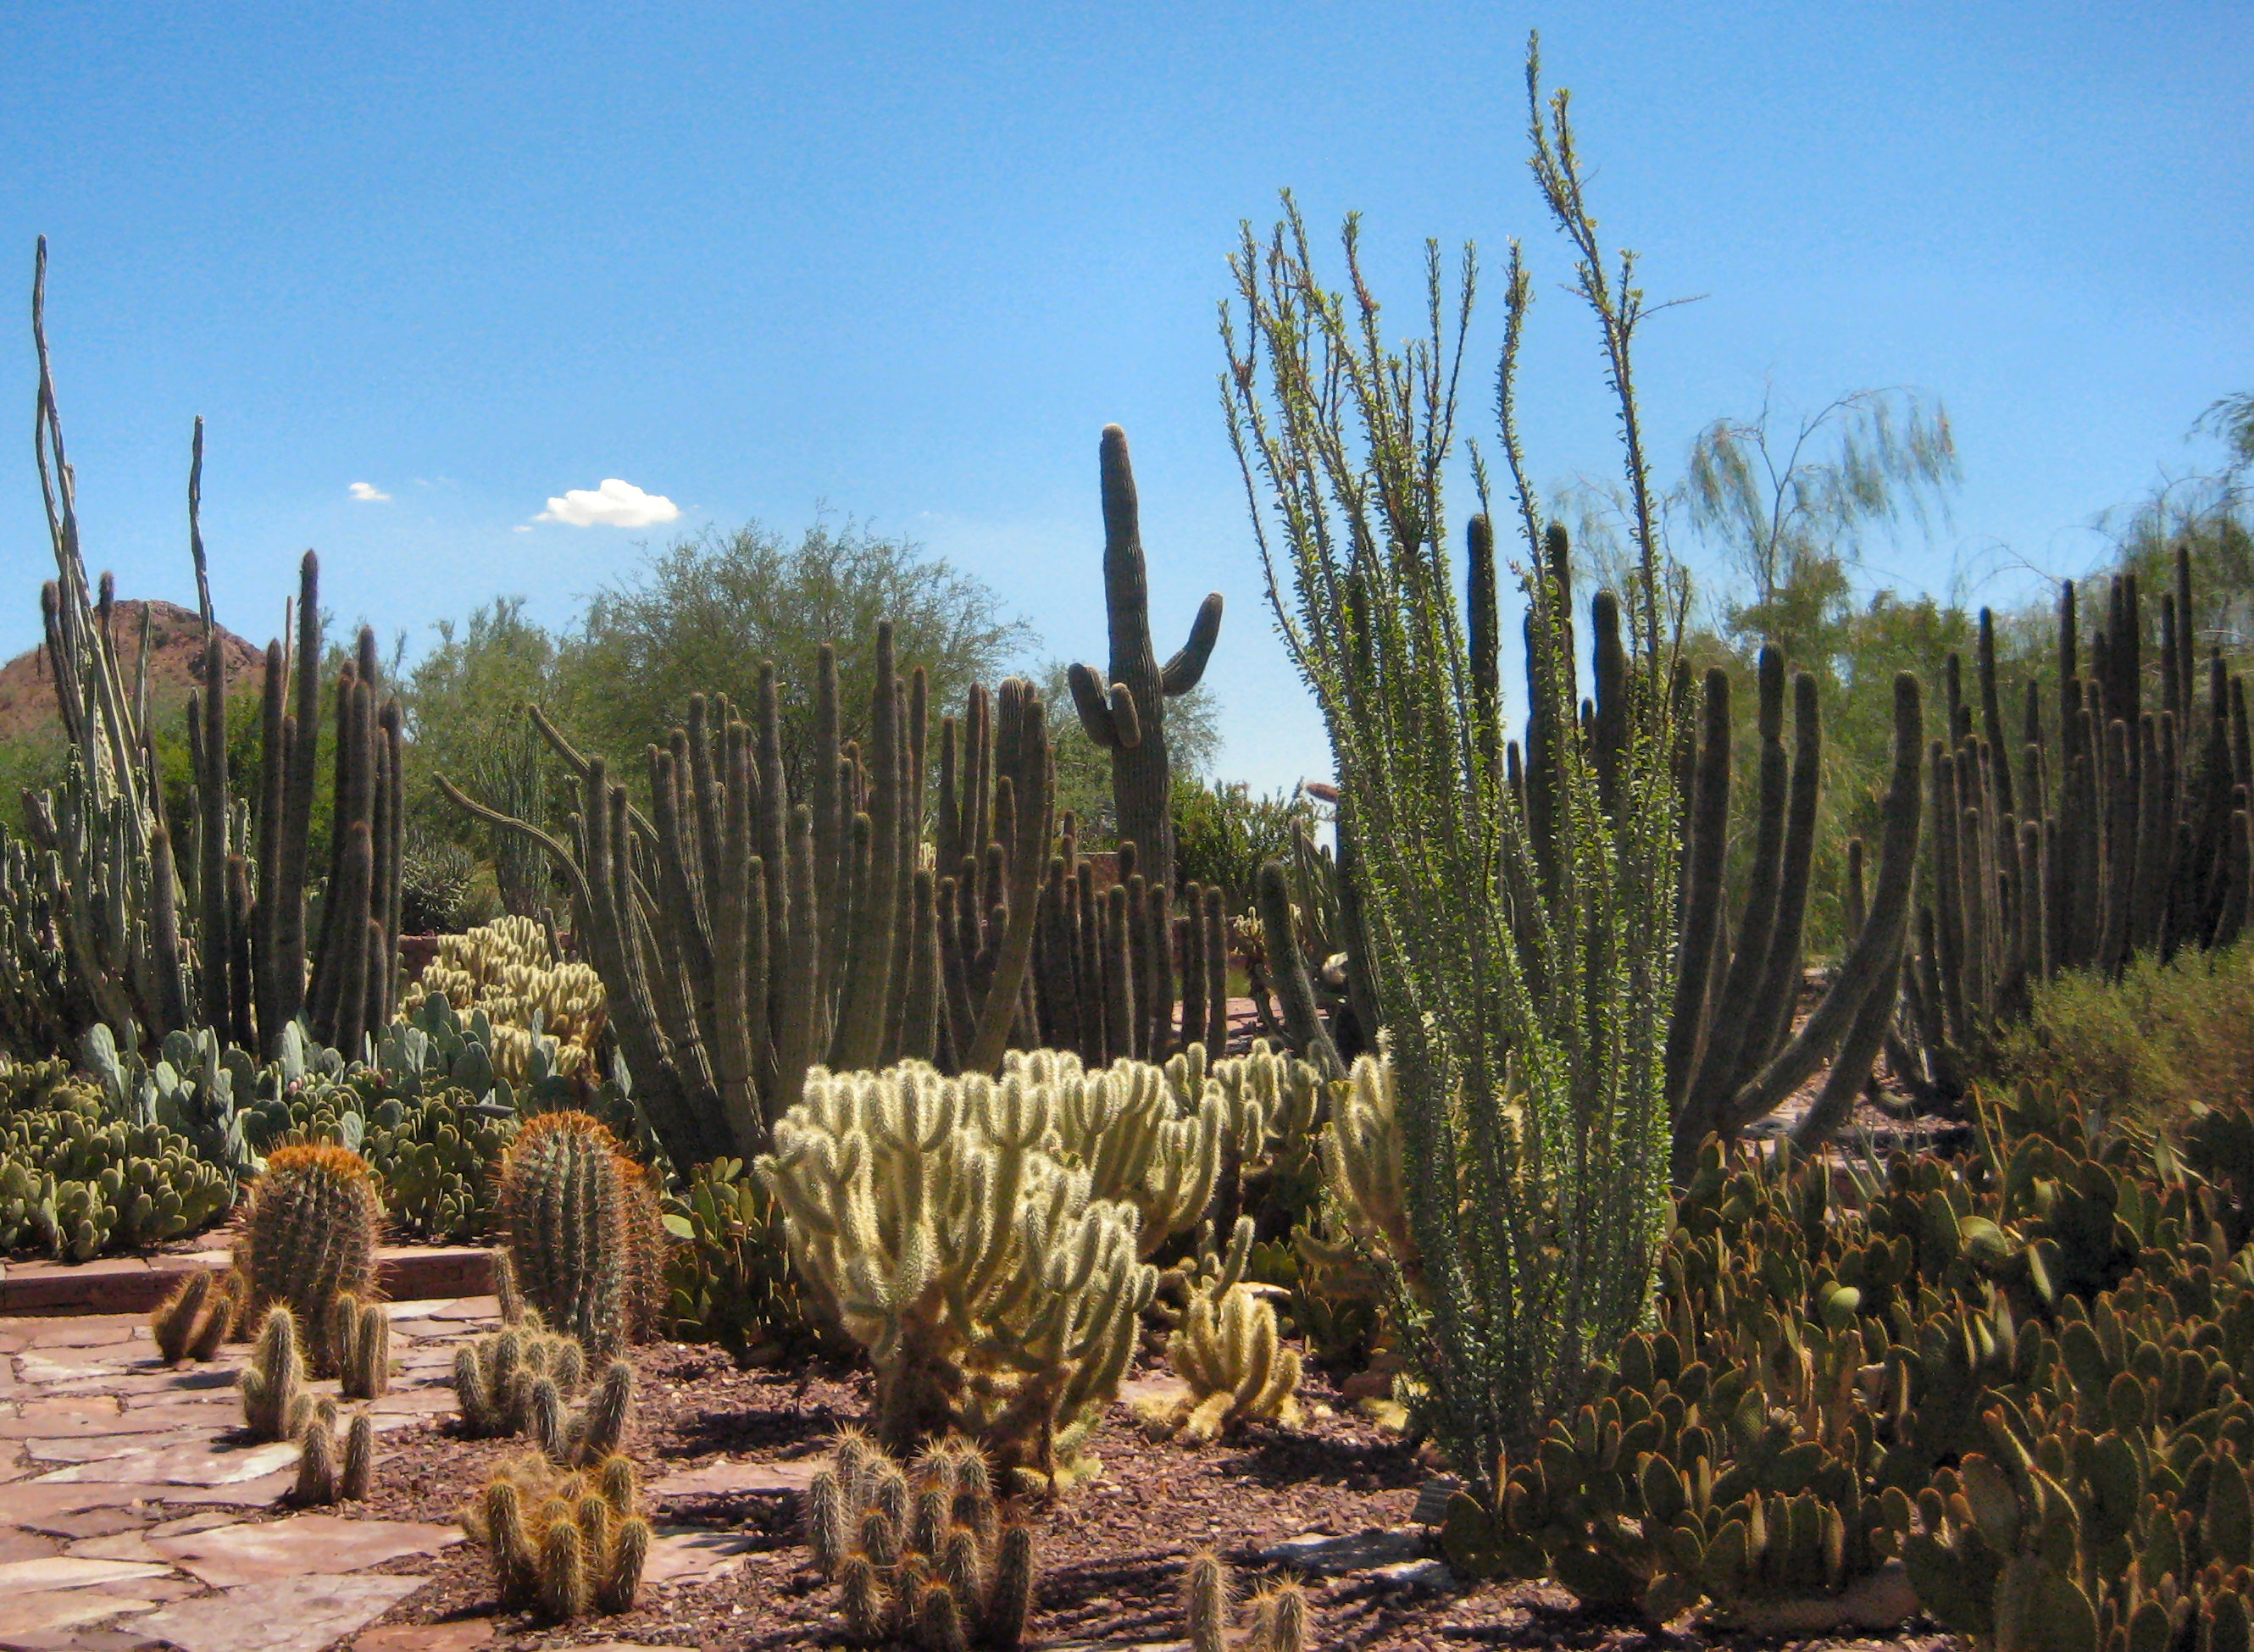 File:Desert Botanical Gardens.jpg - Wikimedia Commons